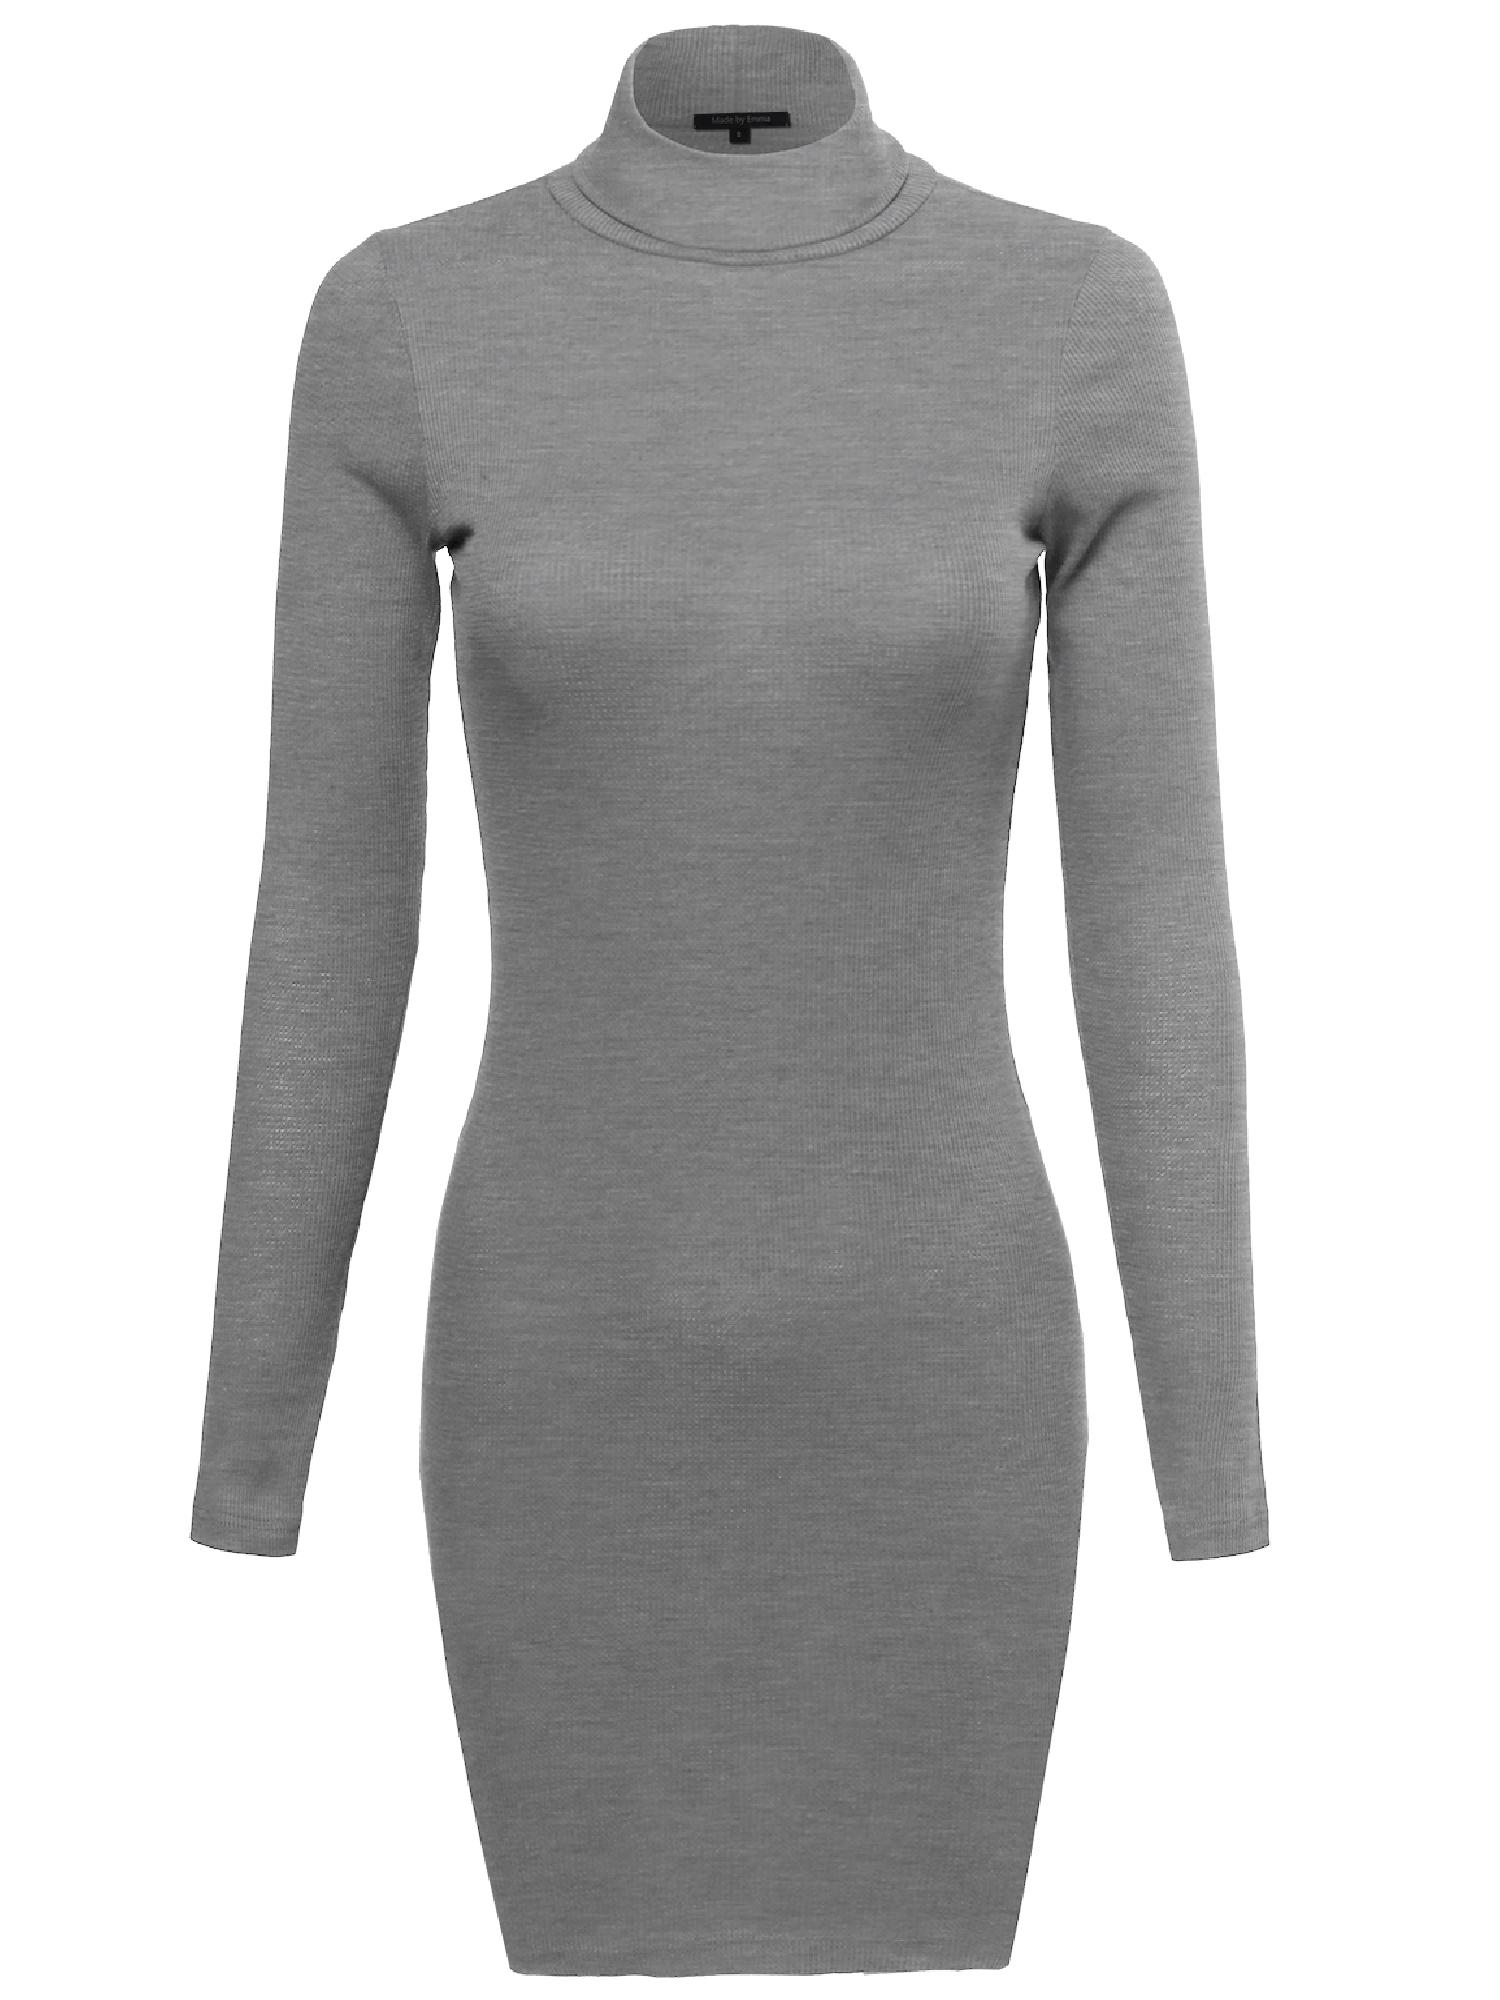 FashionOutfit Women's Basic Lightweight Thermal Turtleneck Top by